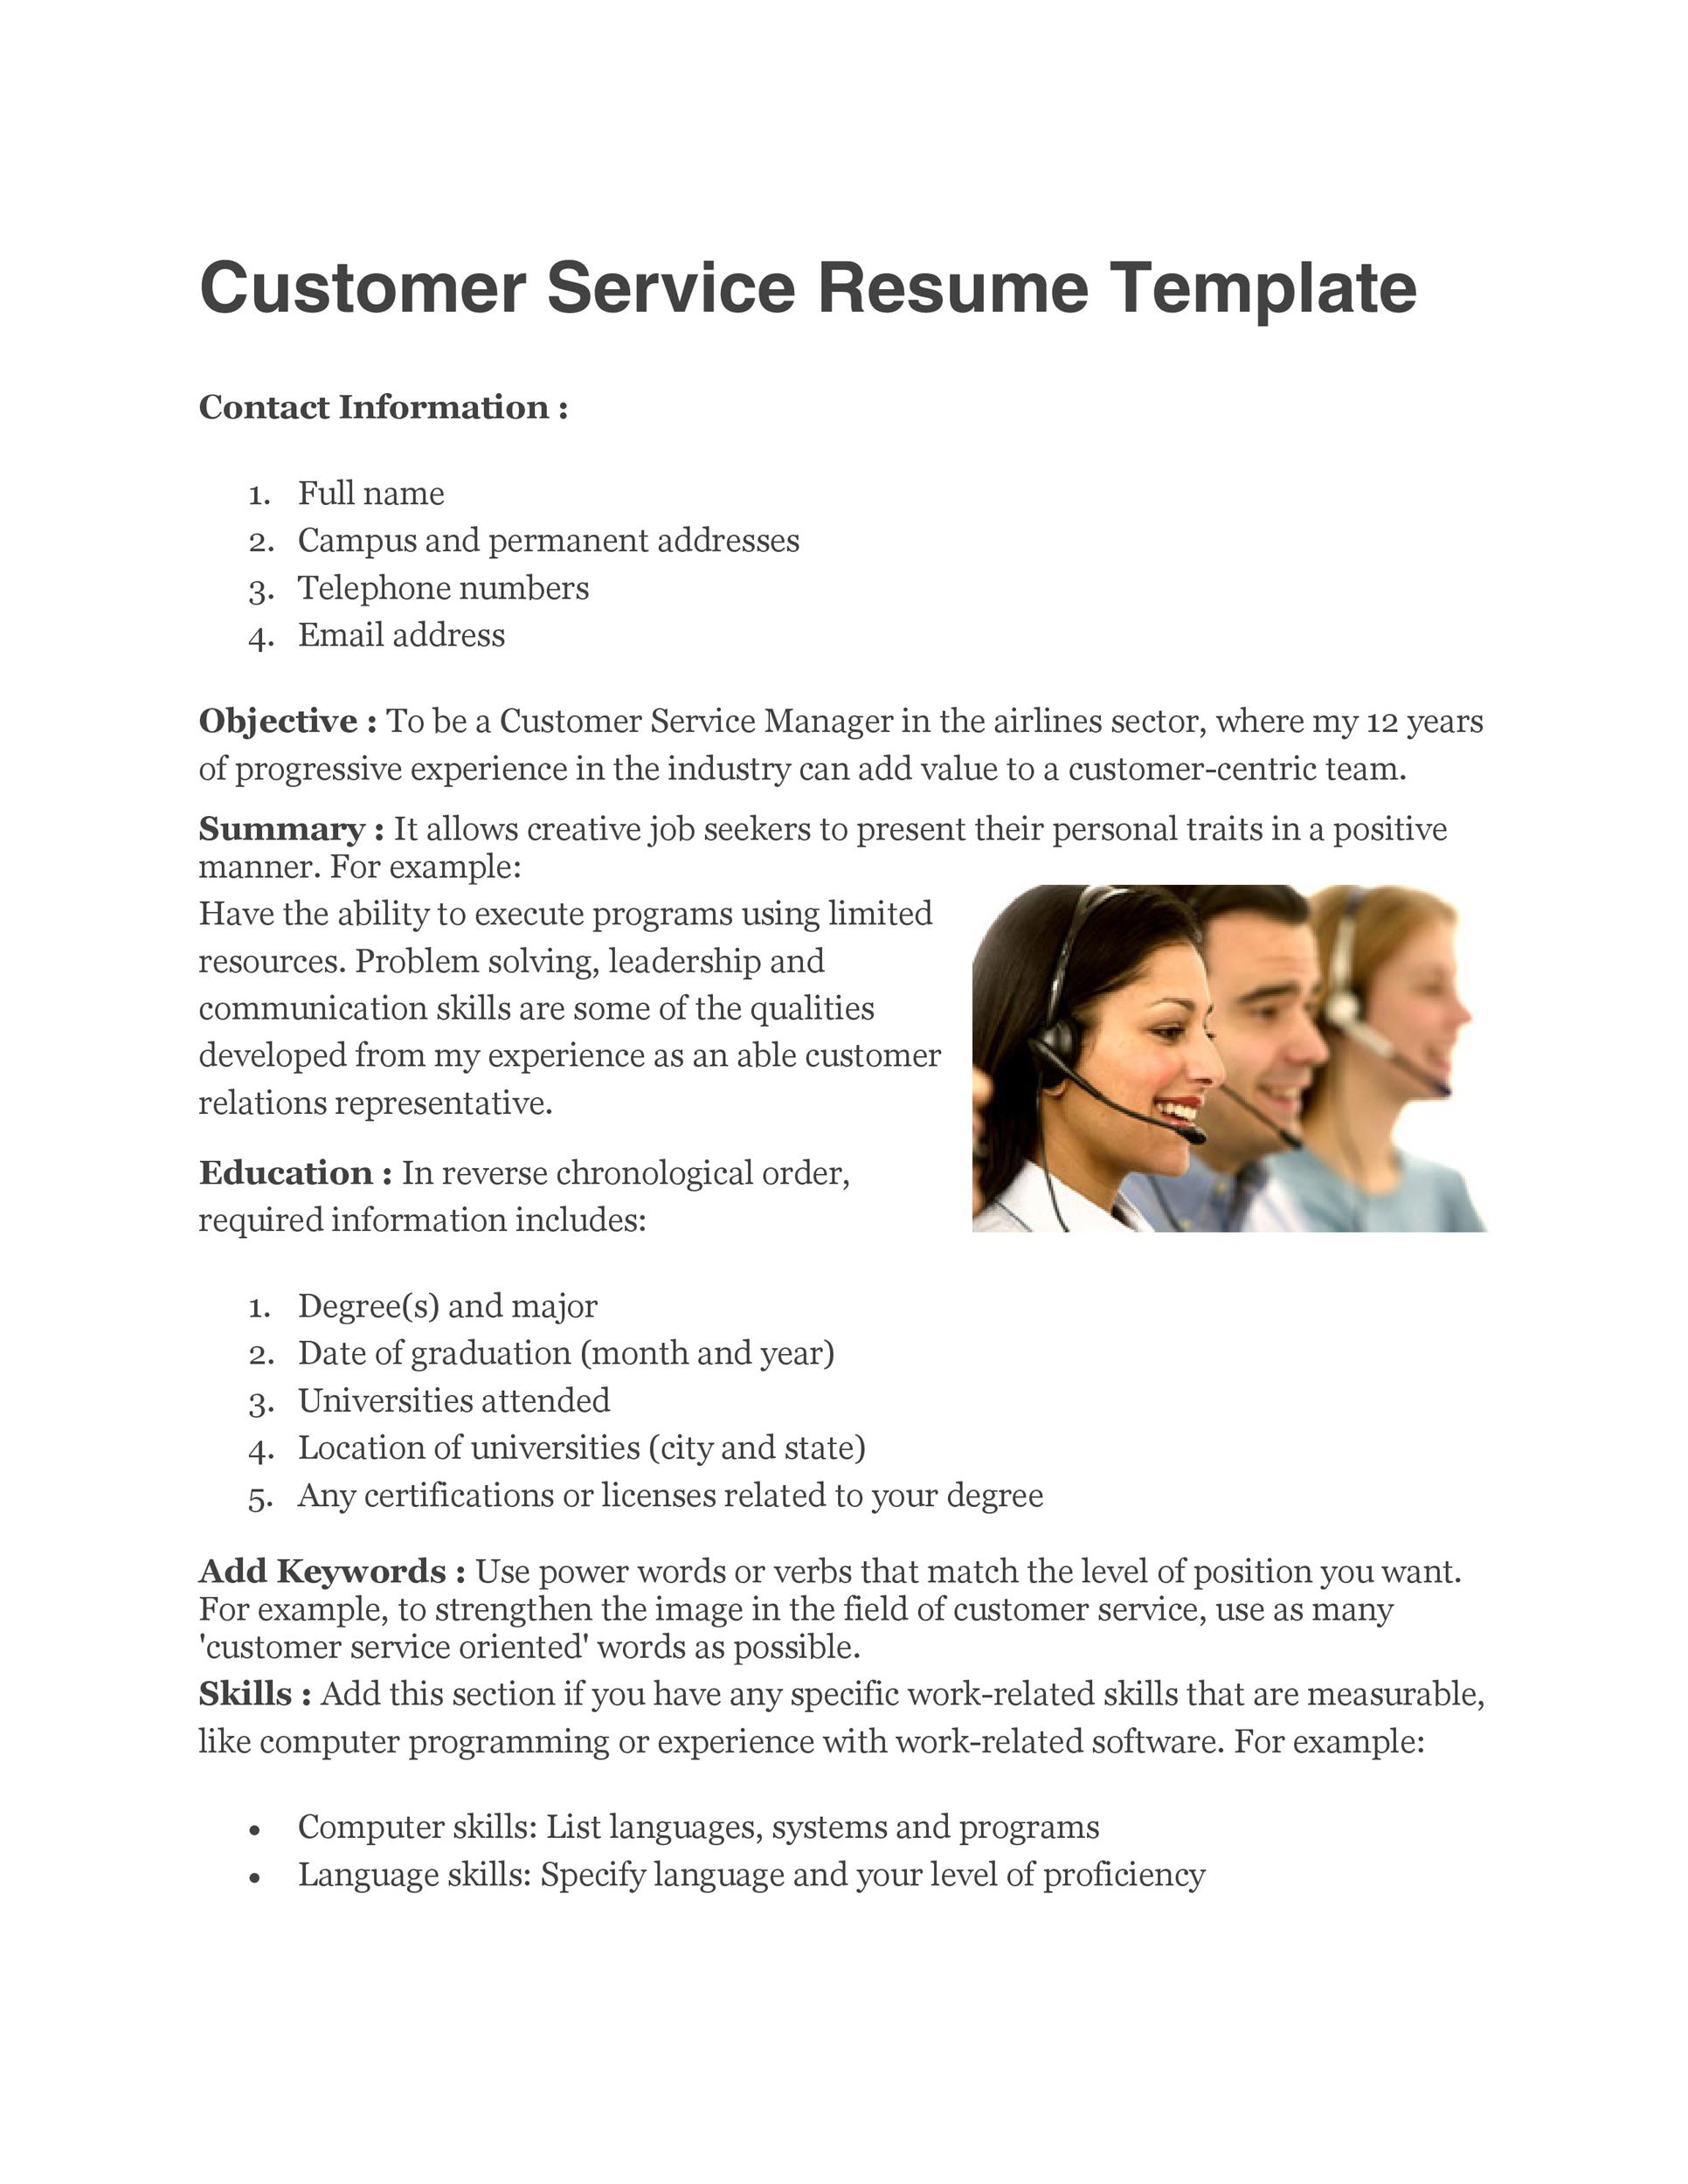 resume with customer service experience